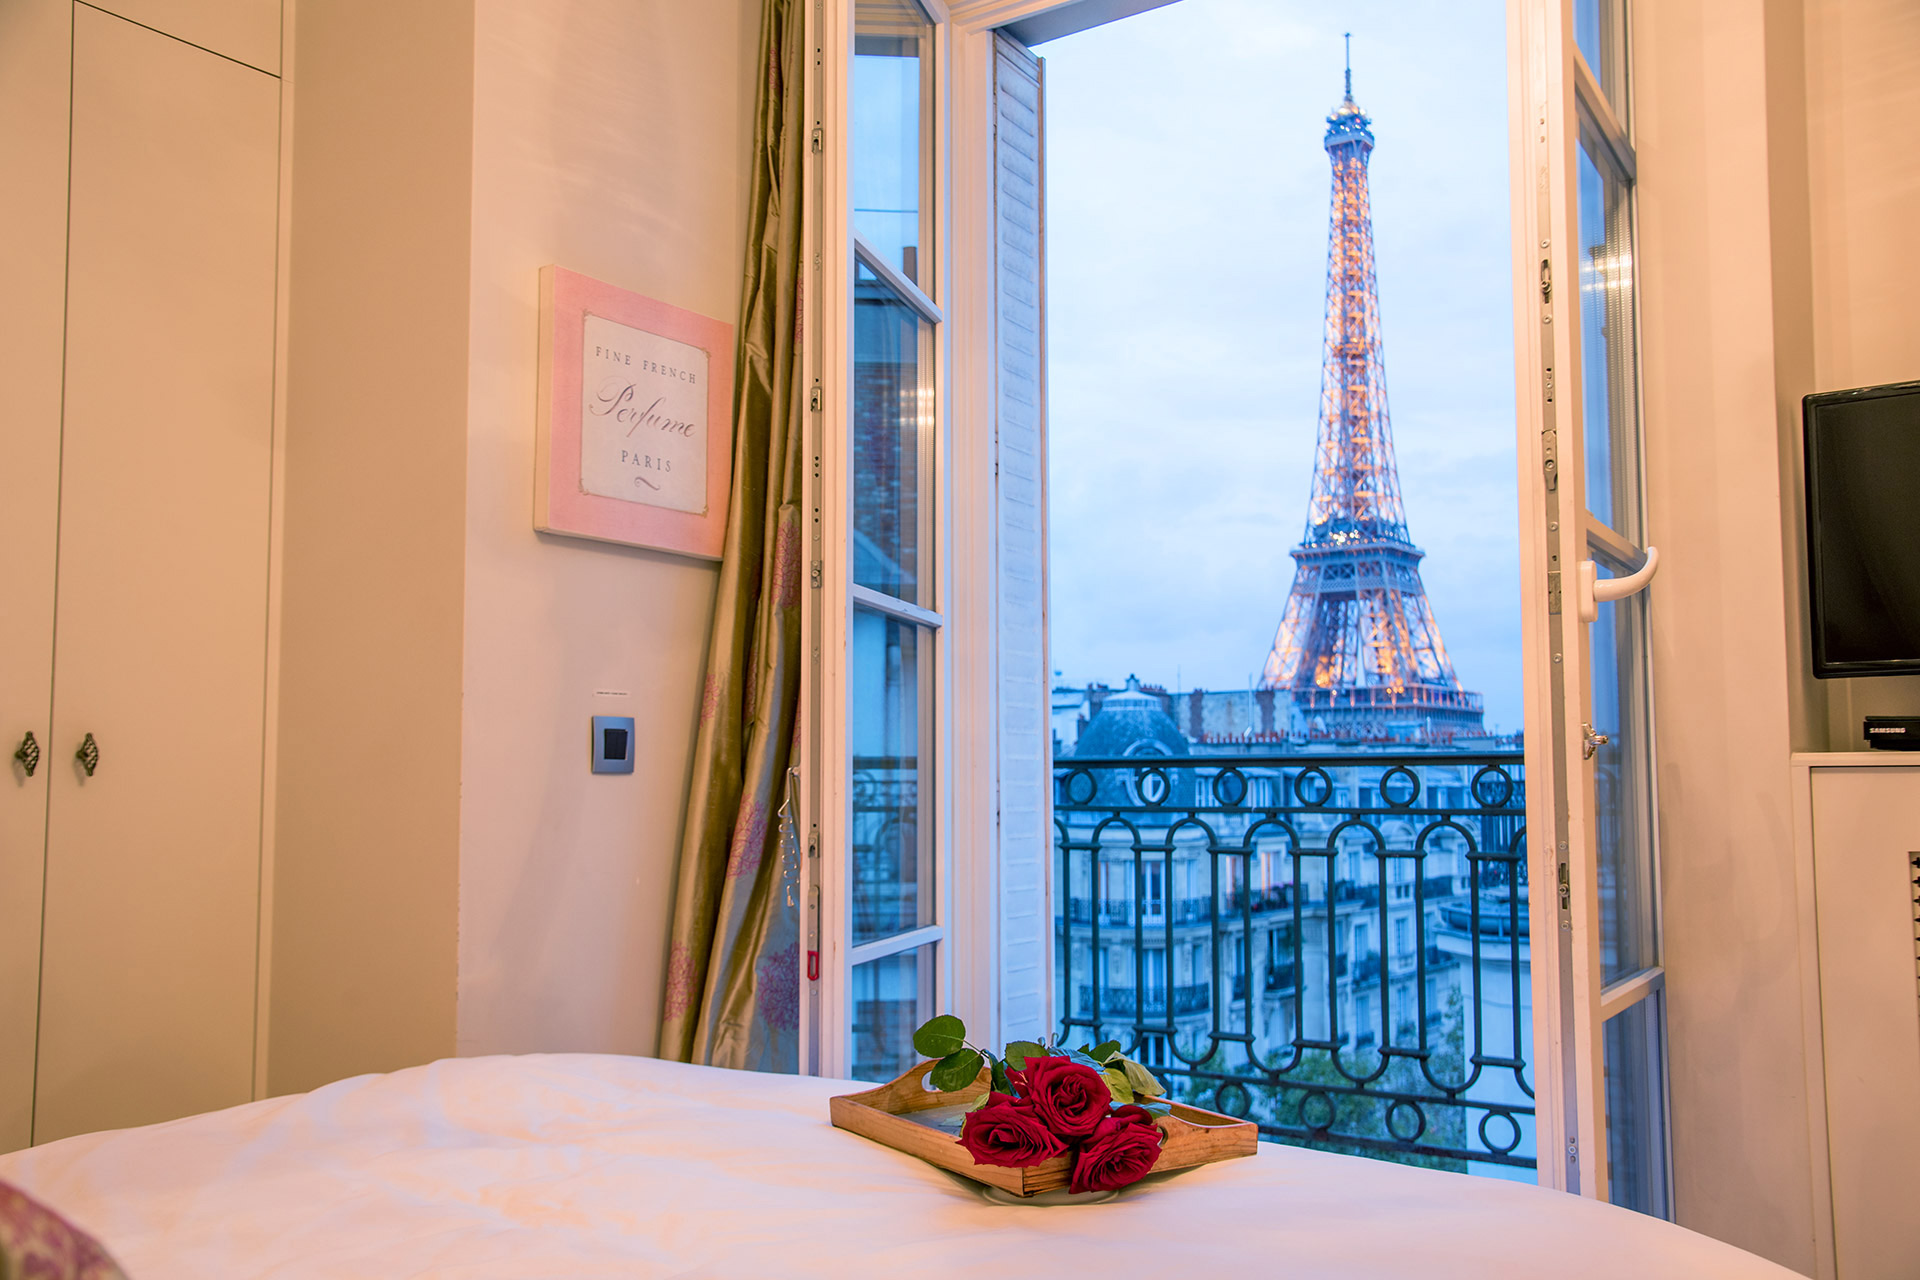 Watch the sunset and the Eiffel Tower light up at the Margaux vacation rental offered by Paris Perfect